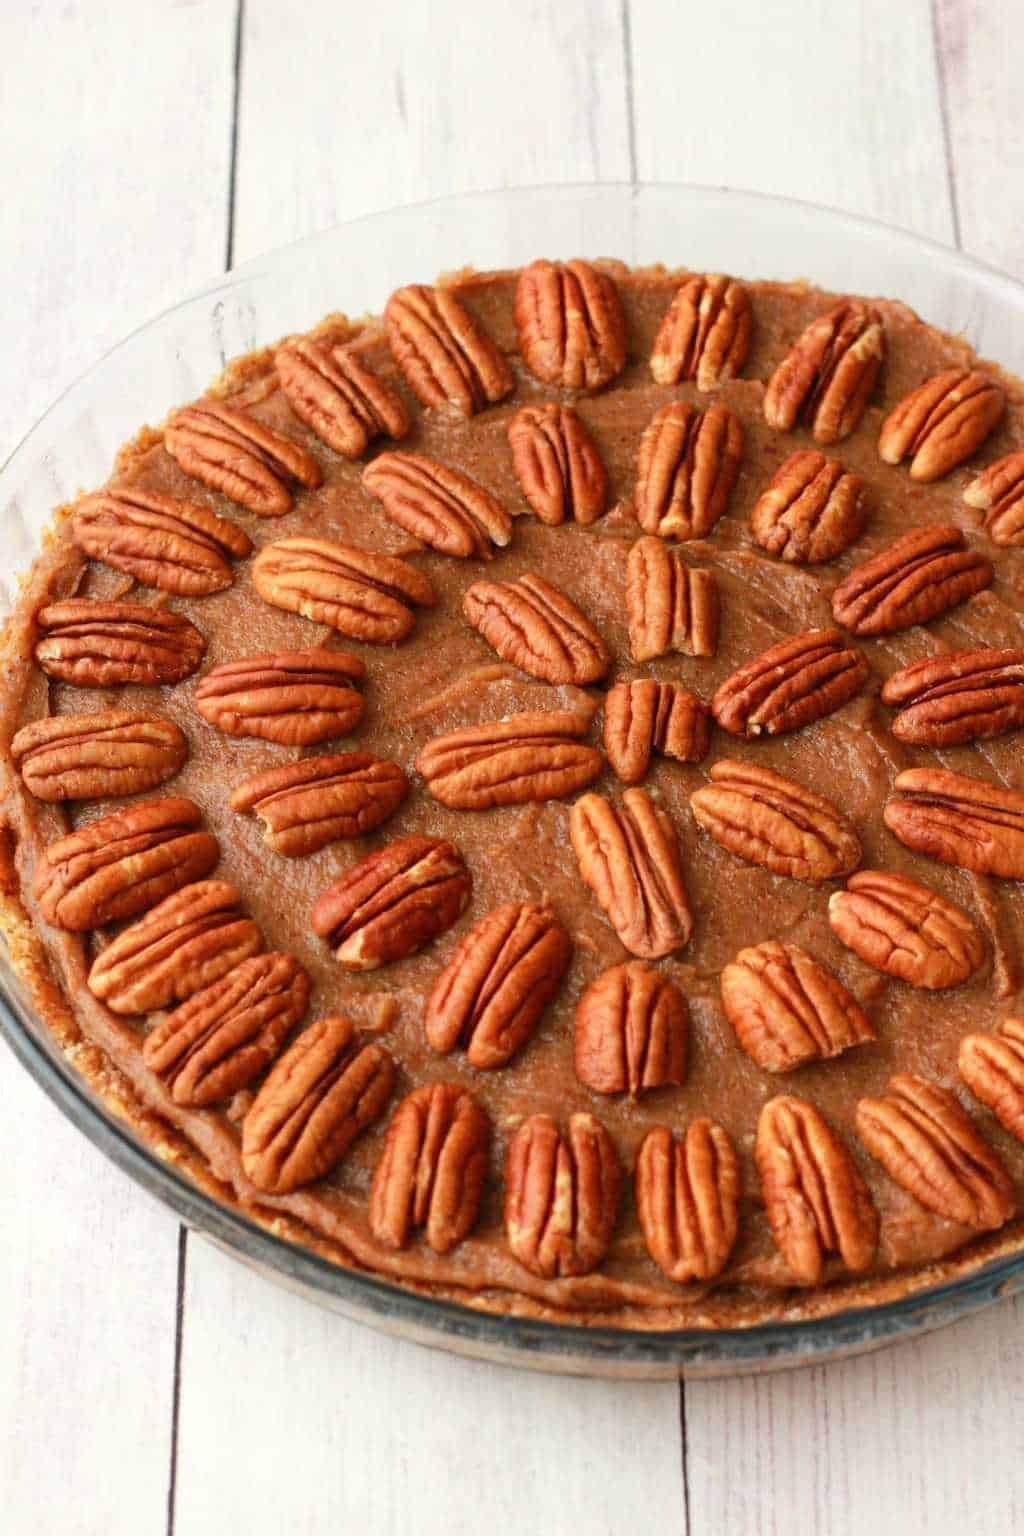 Deliciously raw vegan pecan pie. 3-layers of raw goodness, utterly divine served with vegan whipped cream! #vegan #lovingitvegan #pecanpie #glutenfree #raw #dessert